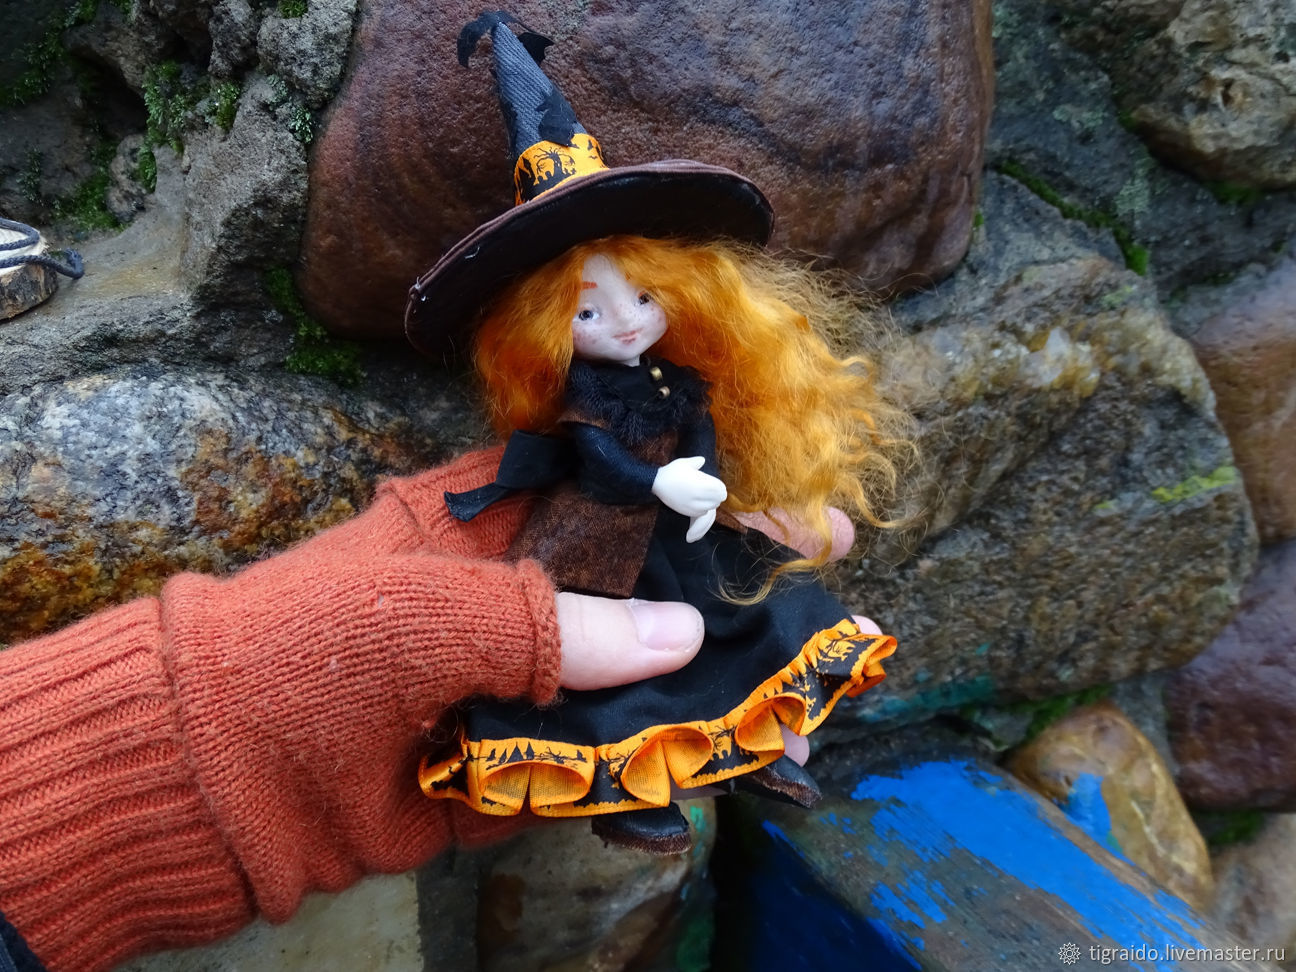 Willow, the little witch - poseable art doll, Dolls, Moscow,  Фото №1